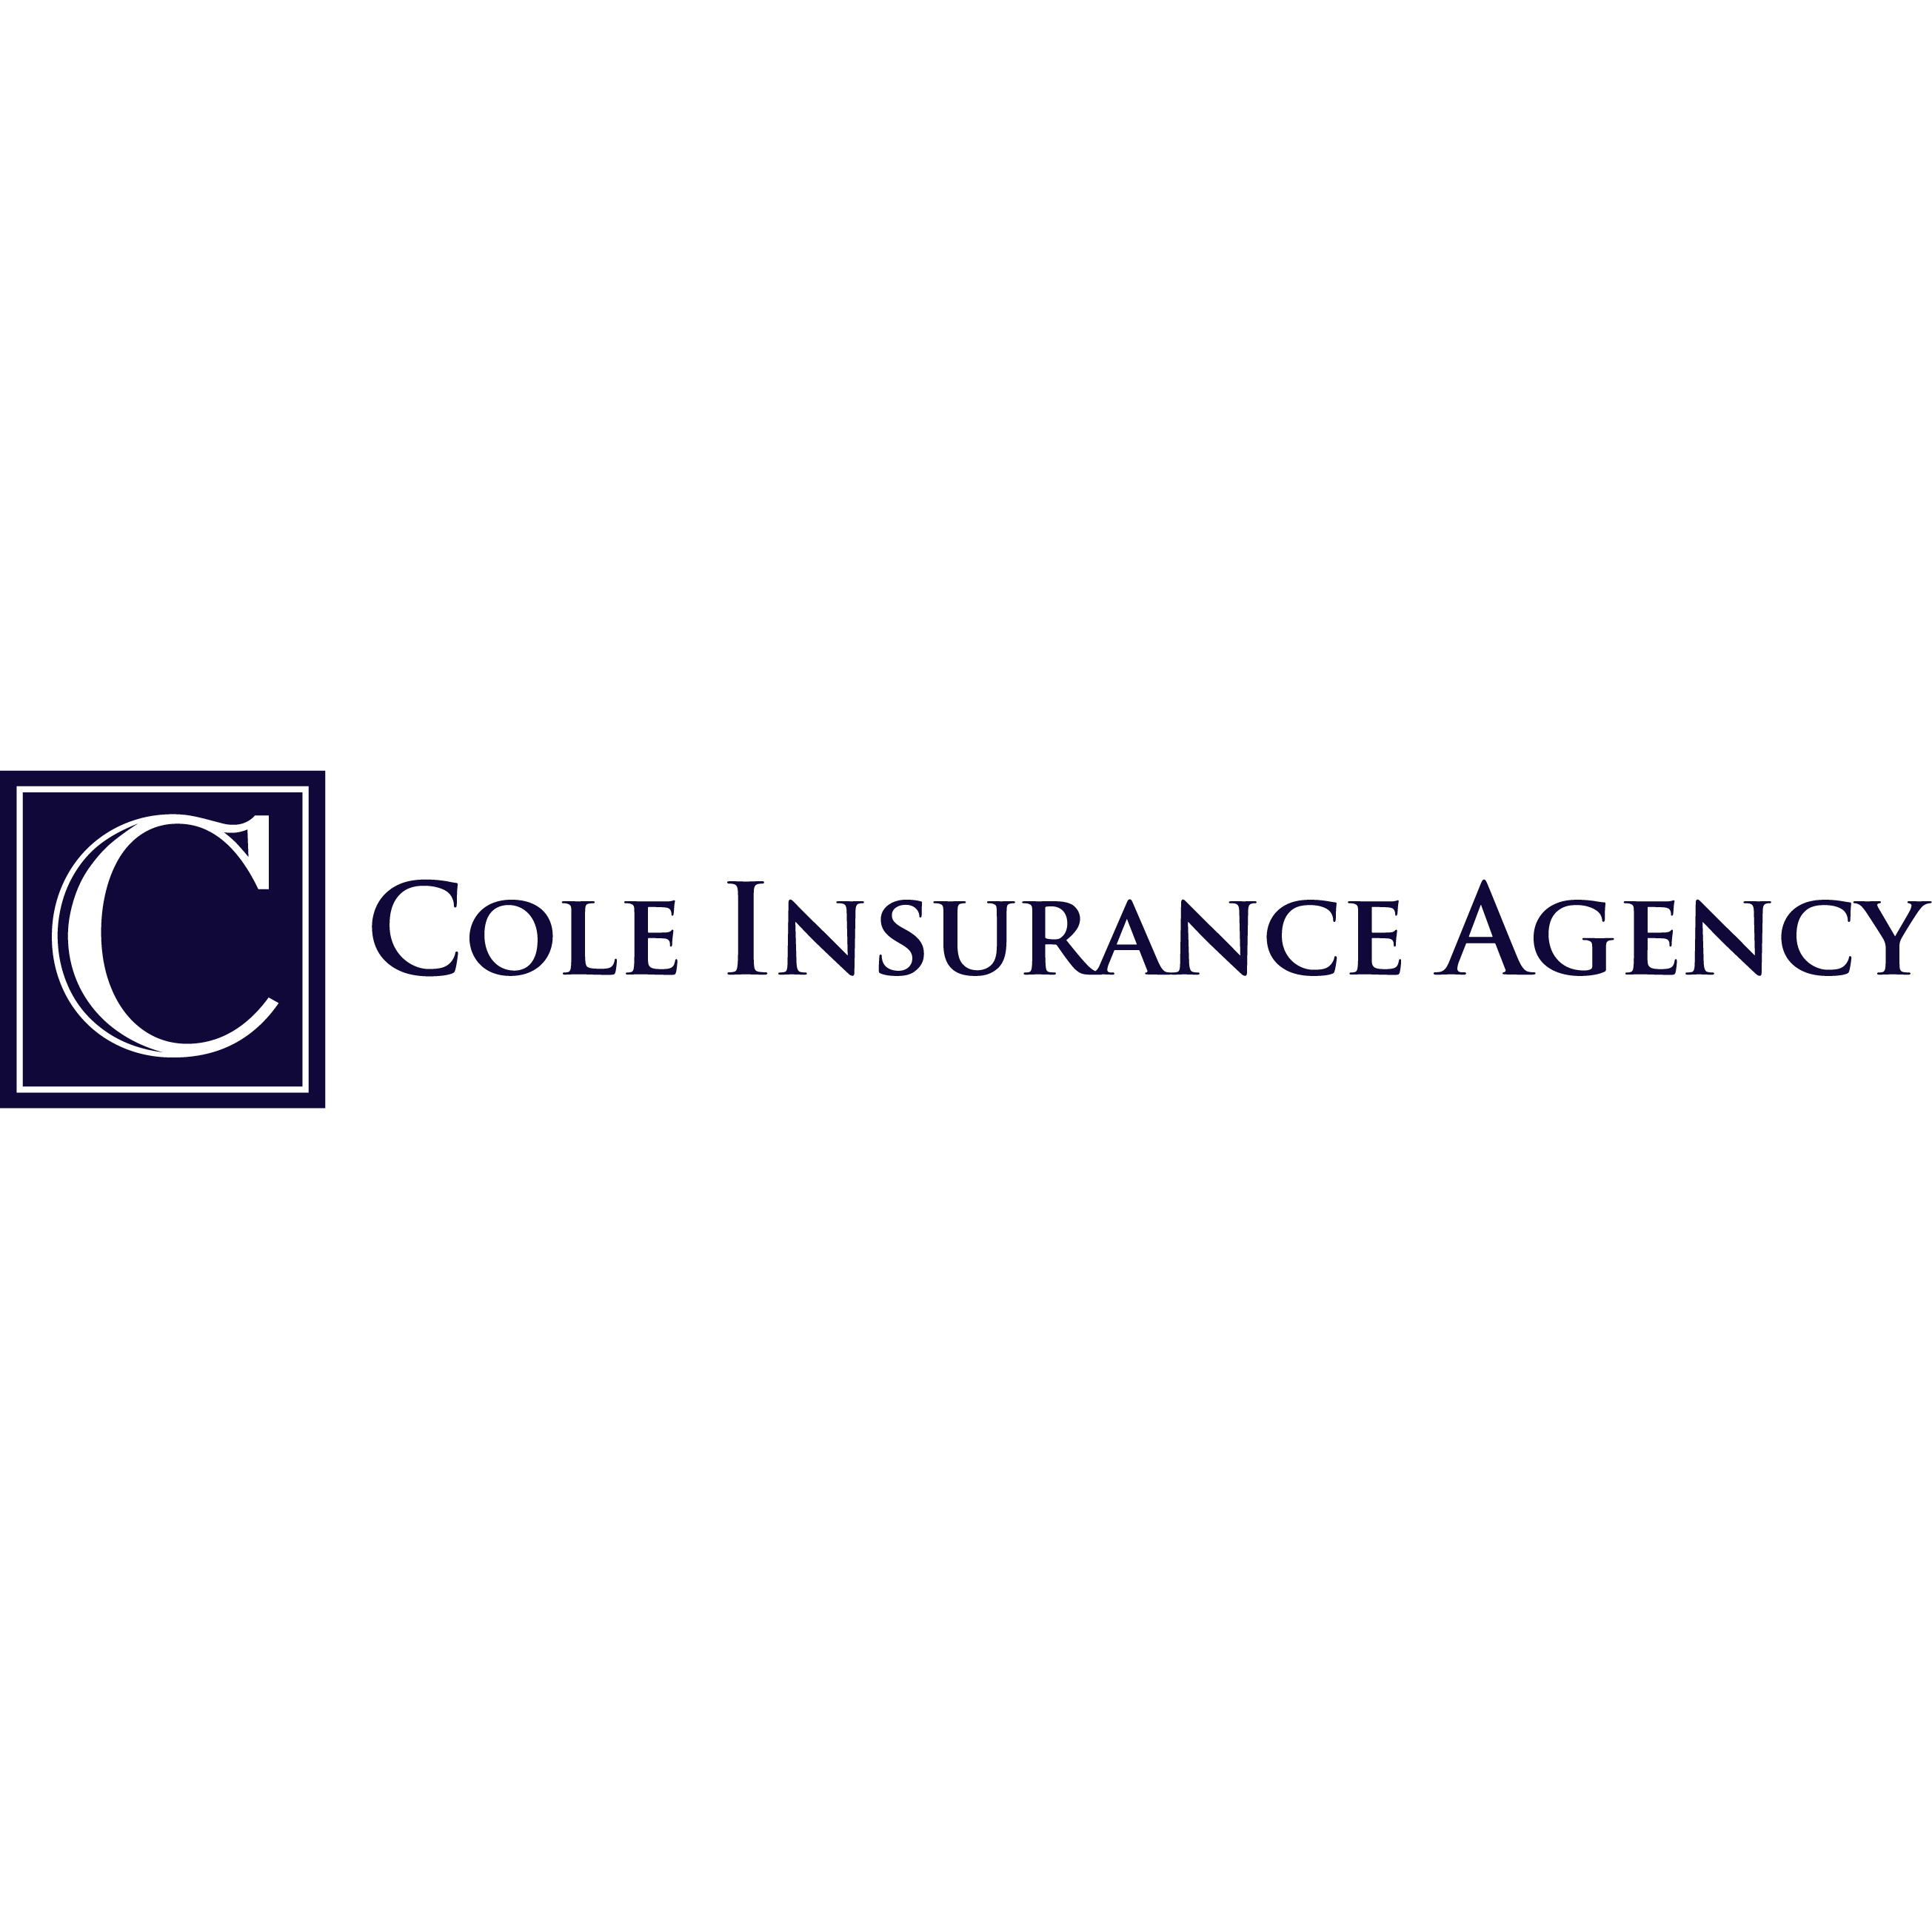 Cole Insurance Agency image 3